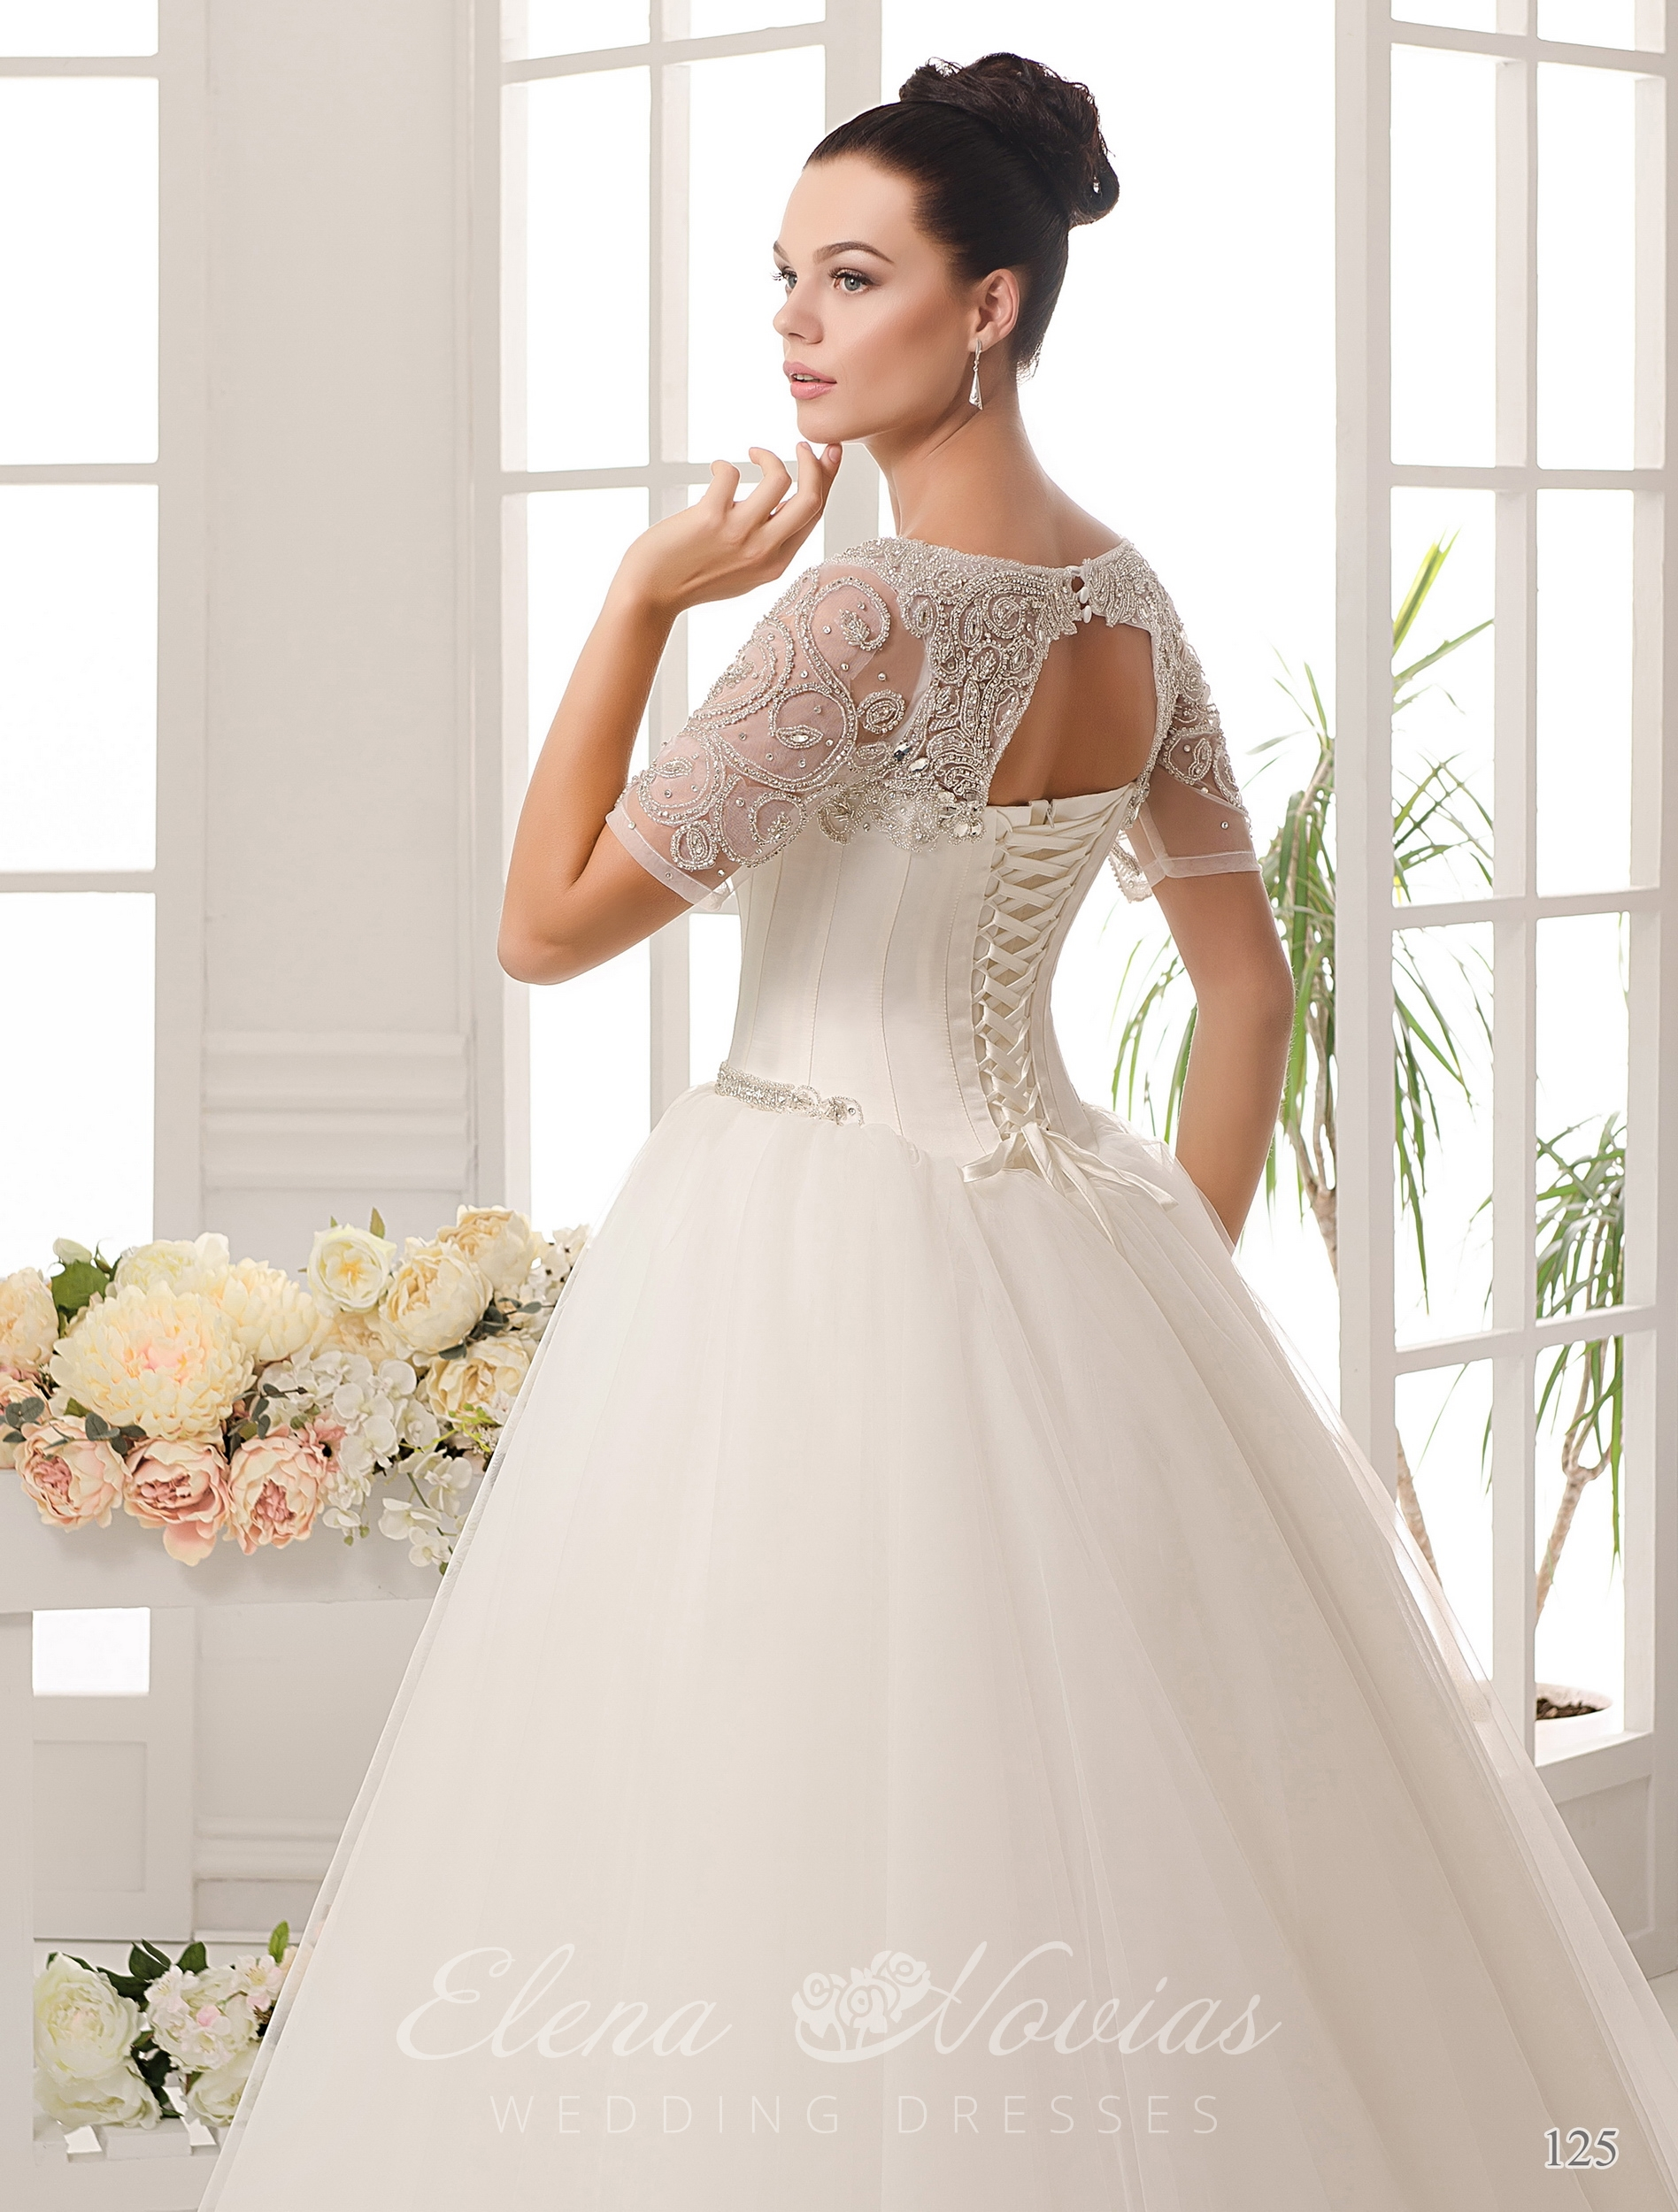 Wedding dress wholesale 125